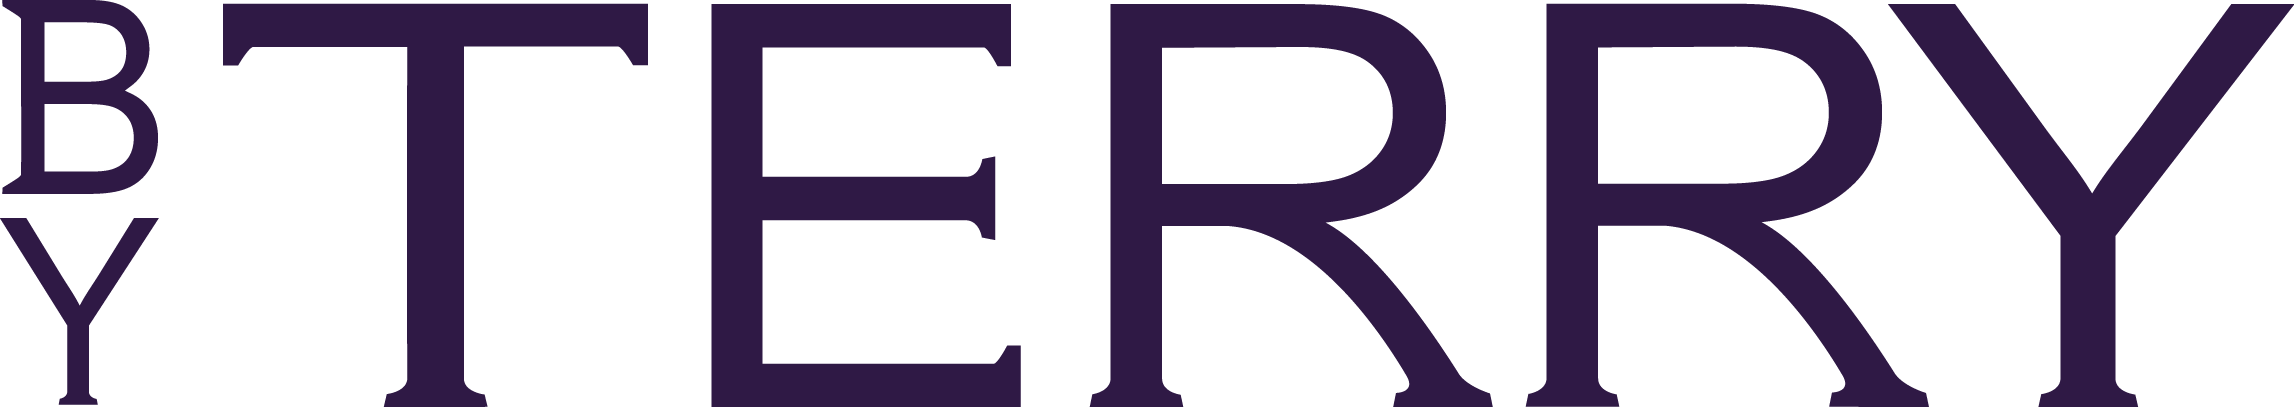 byterrylogo-purple.png